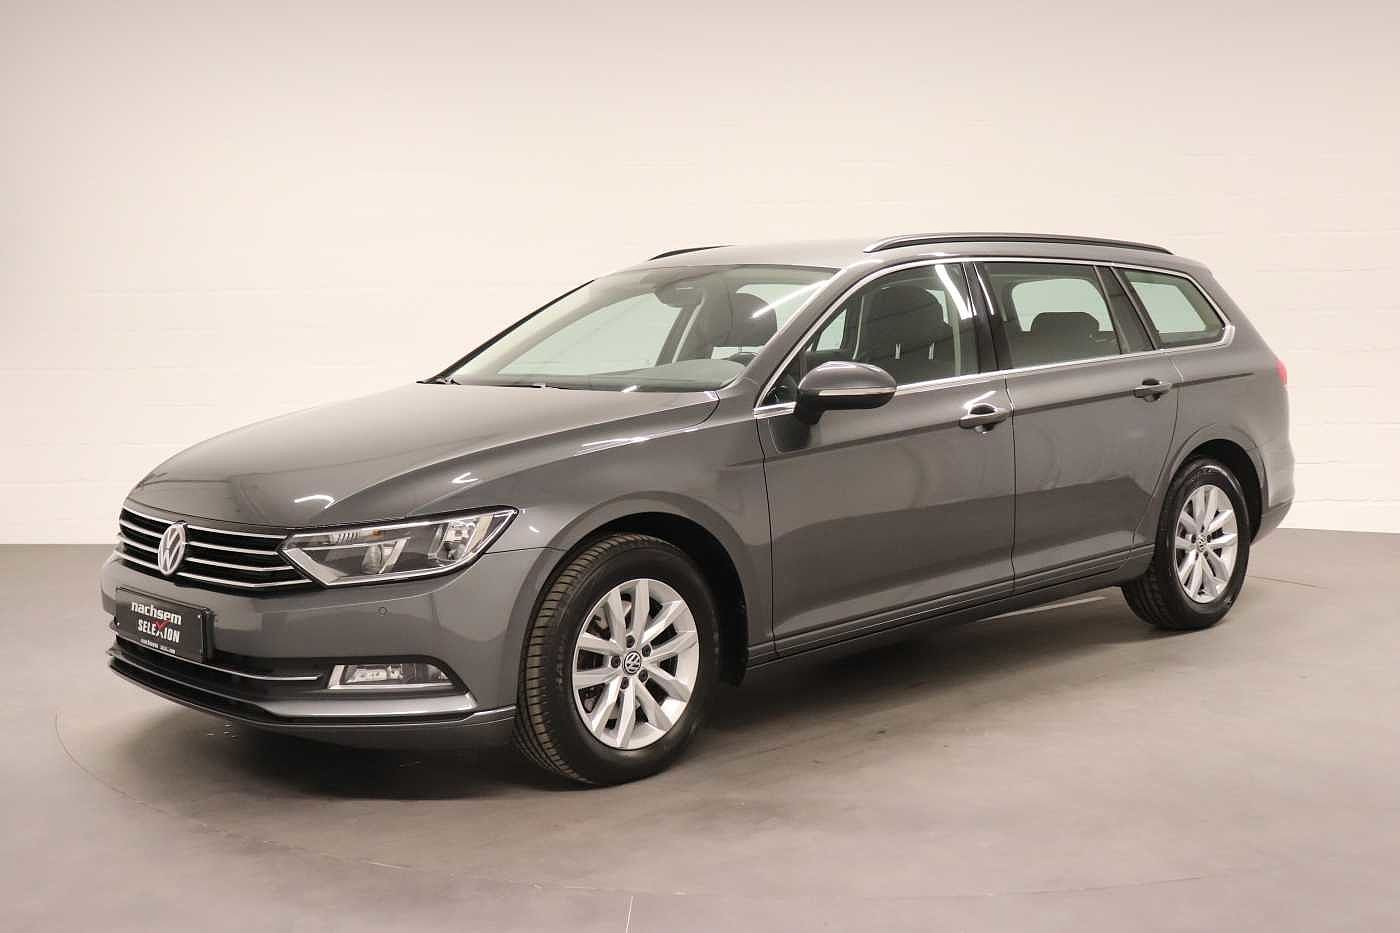 Volkswagen Passat 1.6Tdi - photo 3